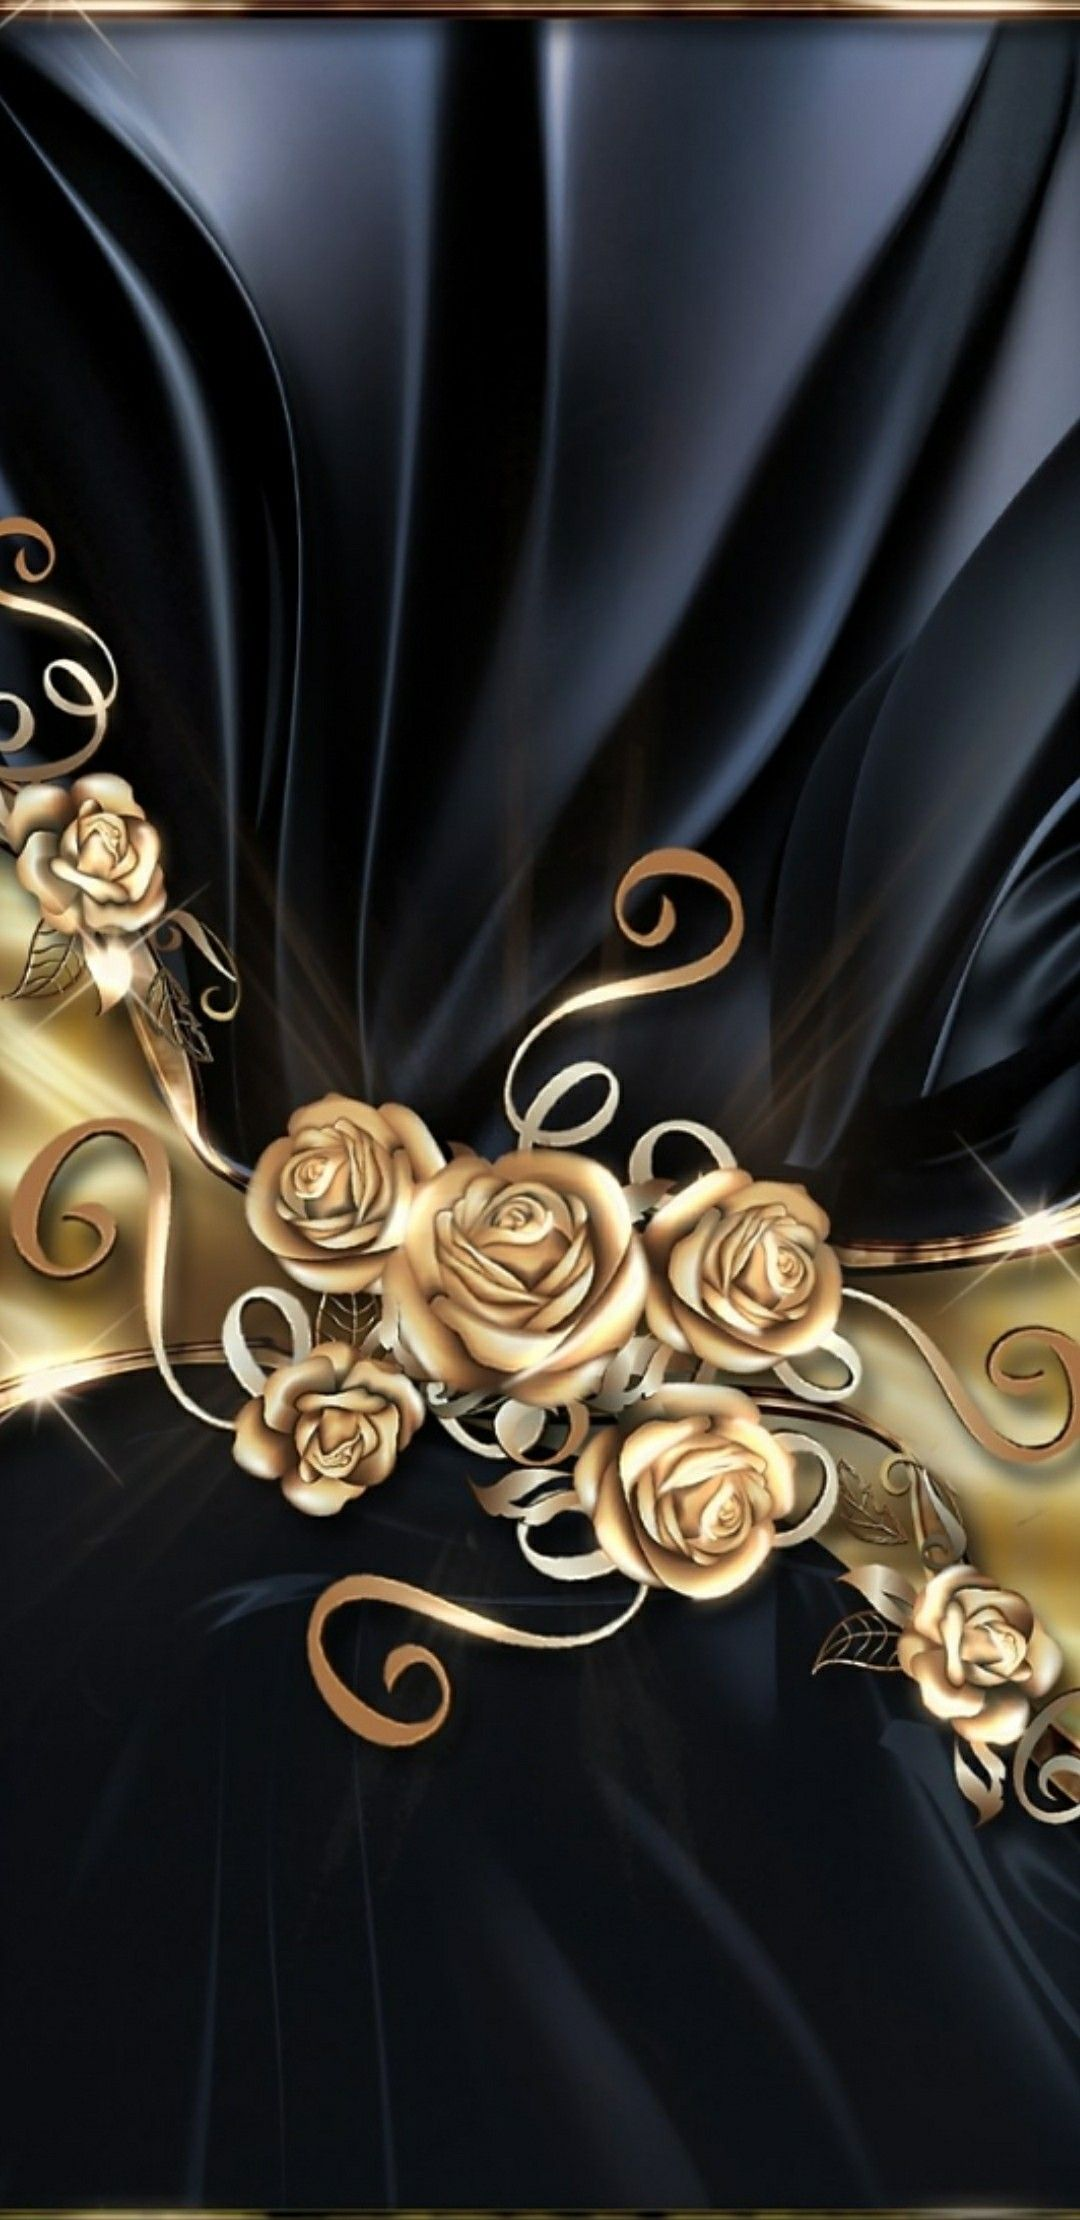 Black And Gold Phone Wallpaper Patterns Bling Wallpaper Gold Wallpaper